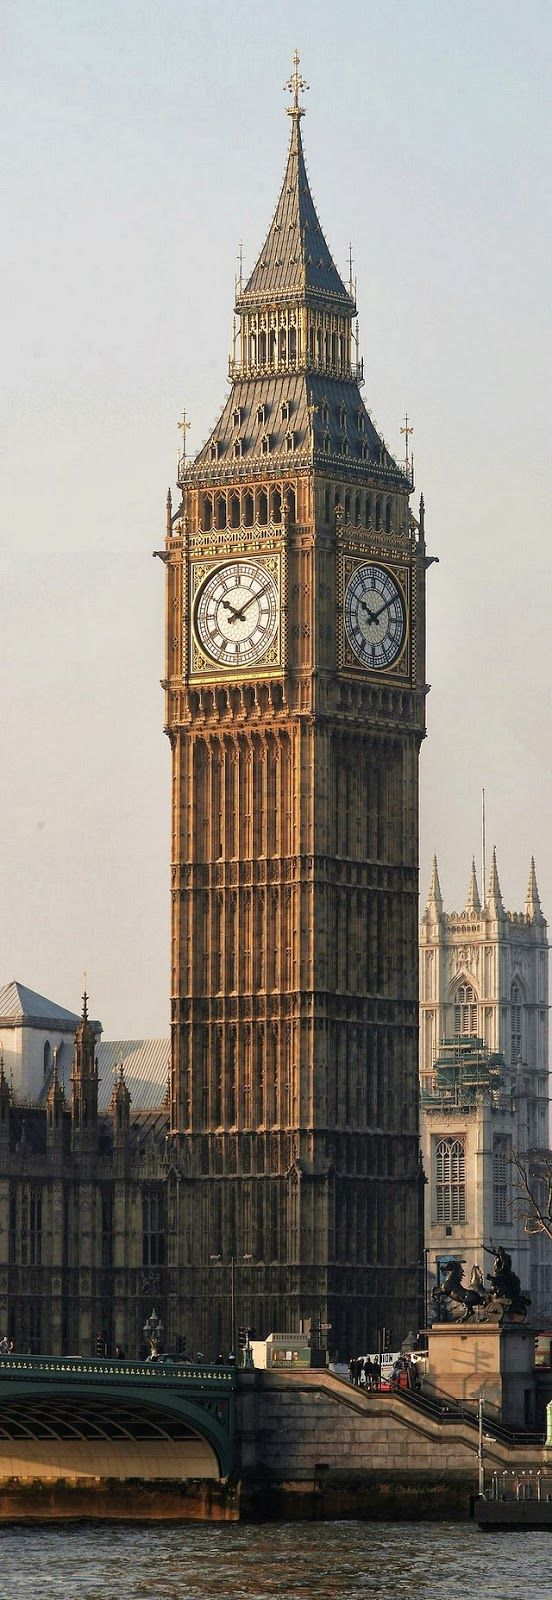 Big Ben ~ is the nickname of the Great Bell of the clock at the north end of the Palace of Westminister in London, England